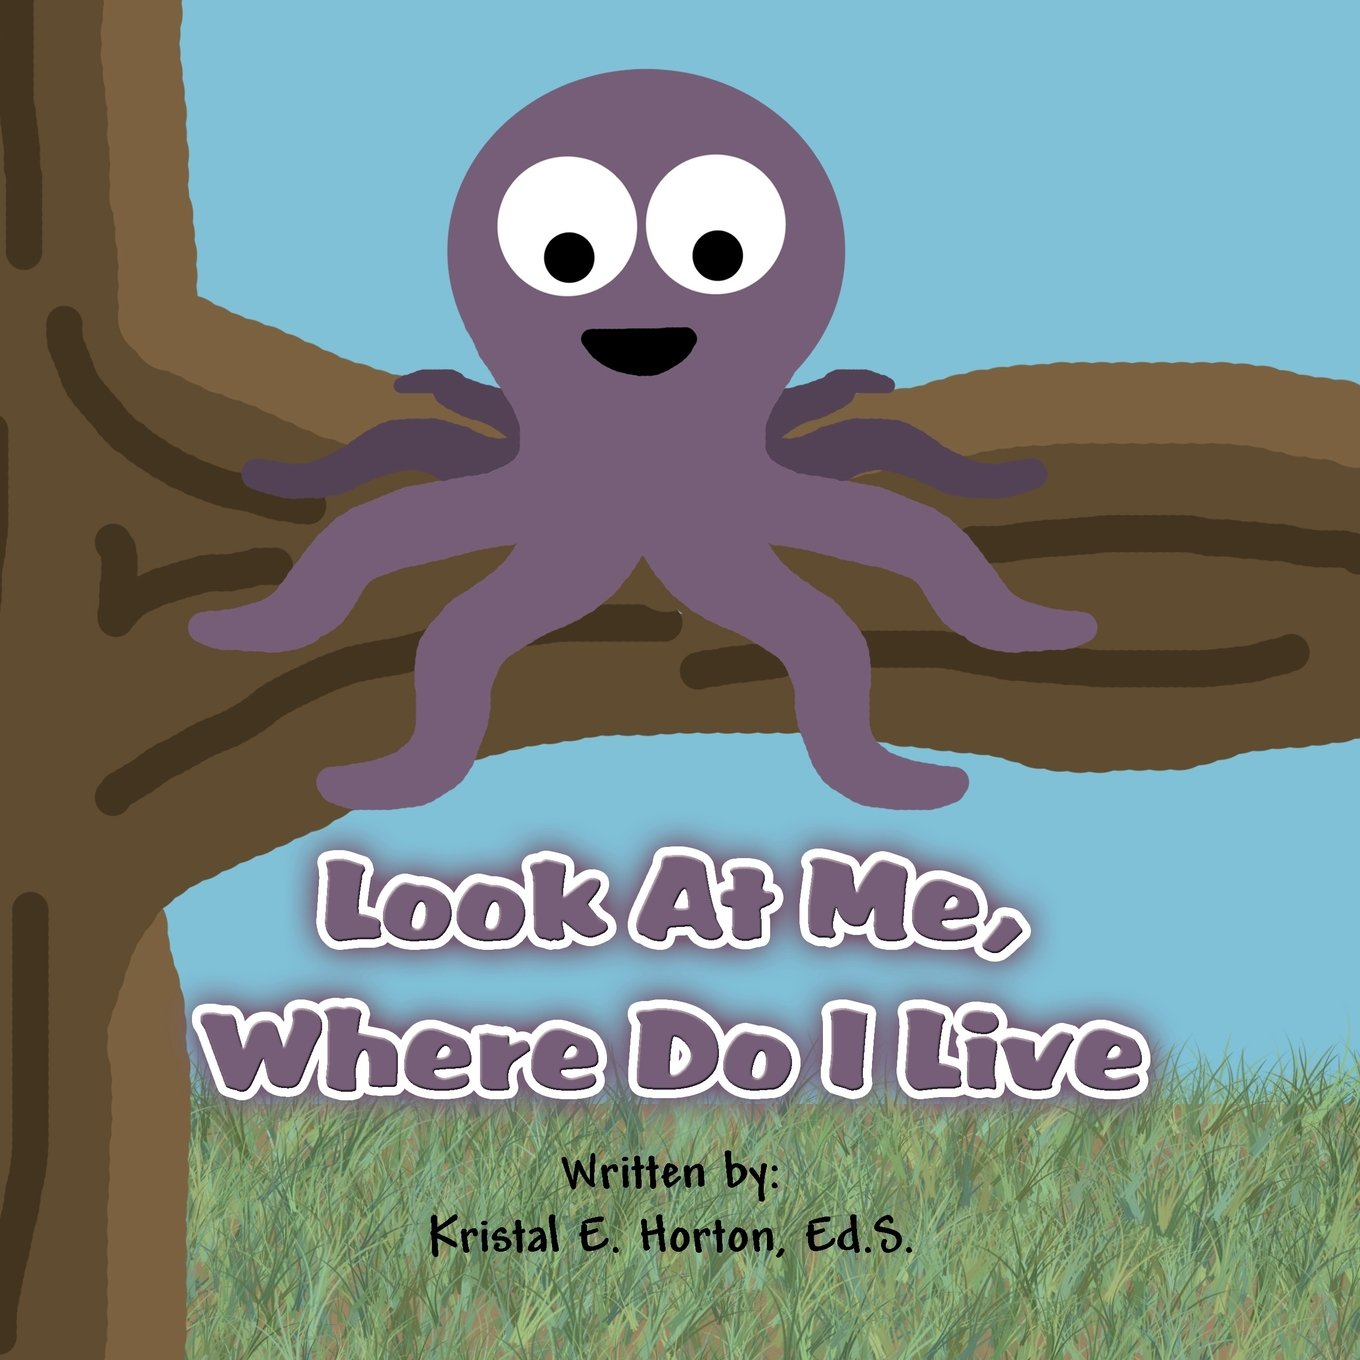 Look At Me Where Do I Live Amazon Co Uk Horton Ed S Kristal E 9781462655083 Books At the moment, i live in downtown toronto, but it's not where i grew up. amazon co uk